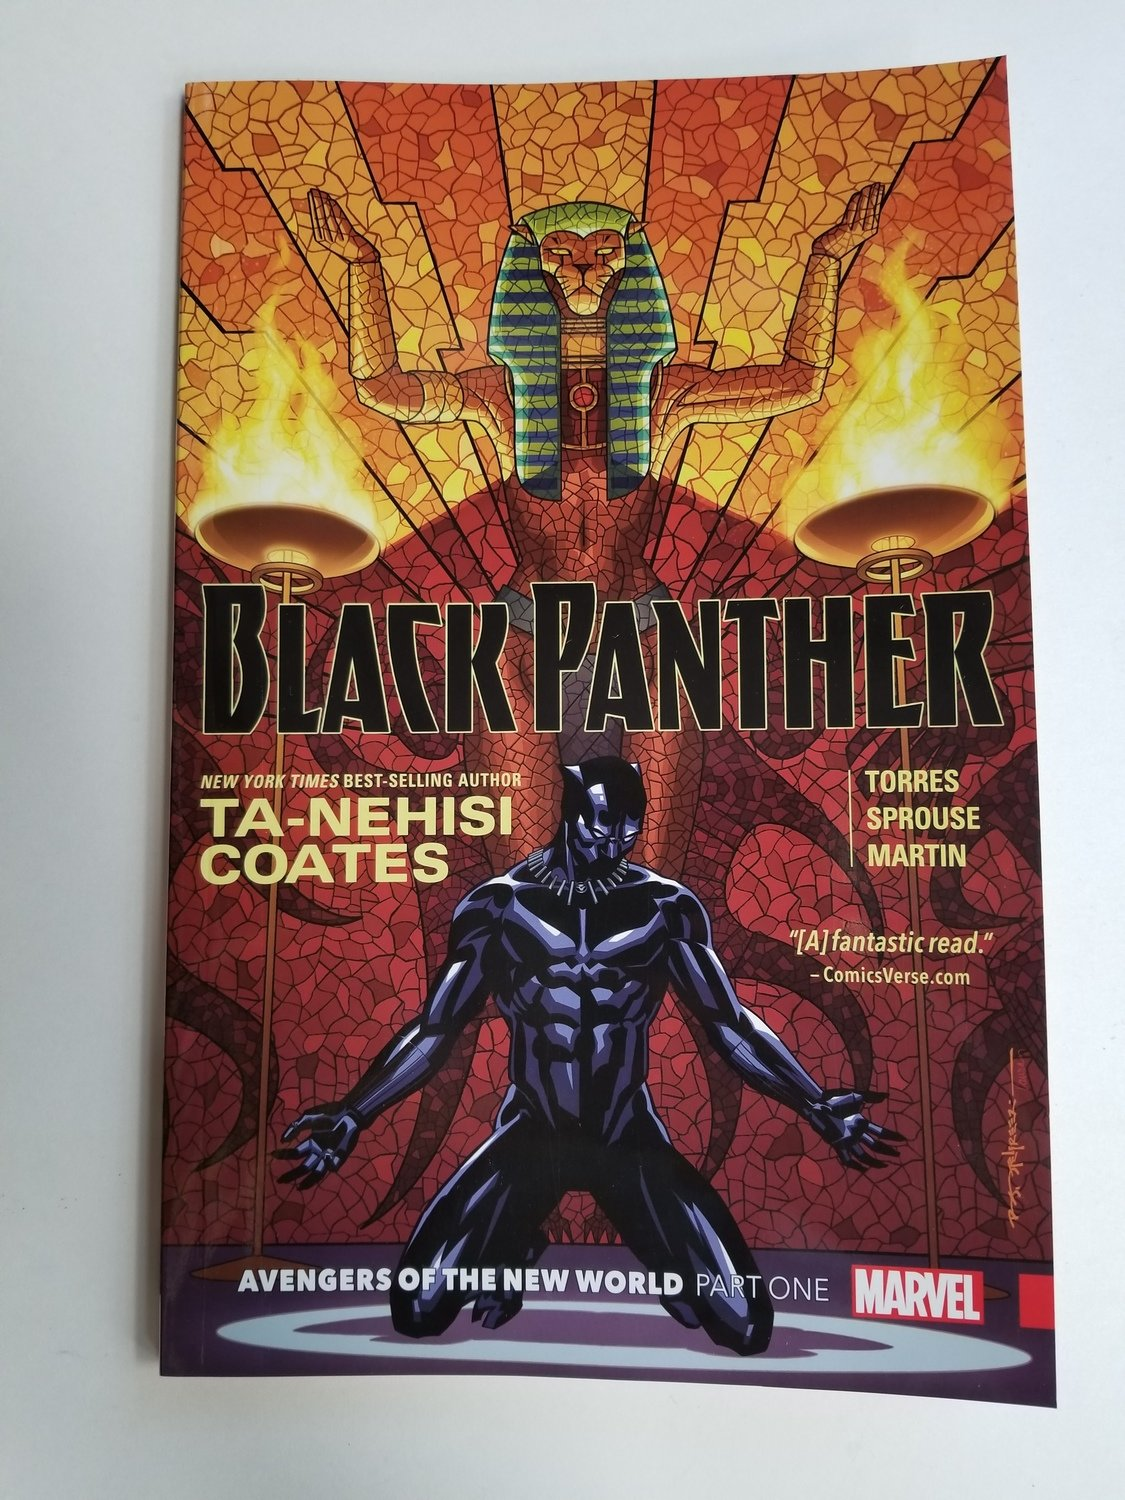 Black Panther Avengers of the New World